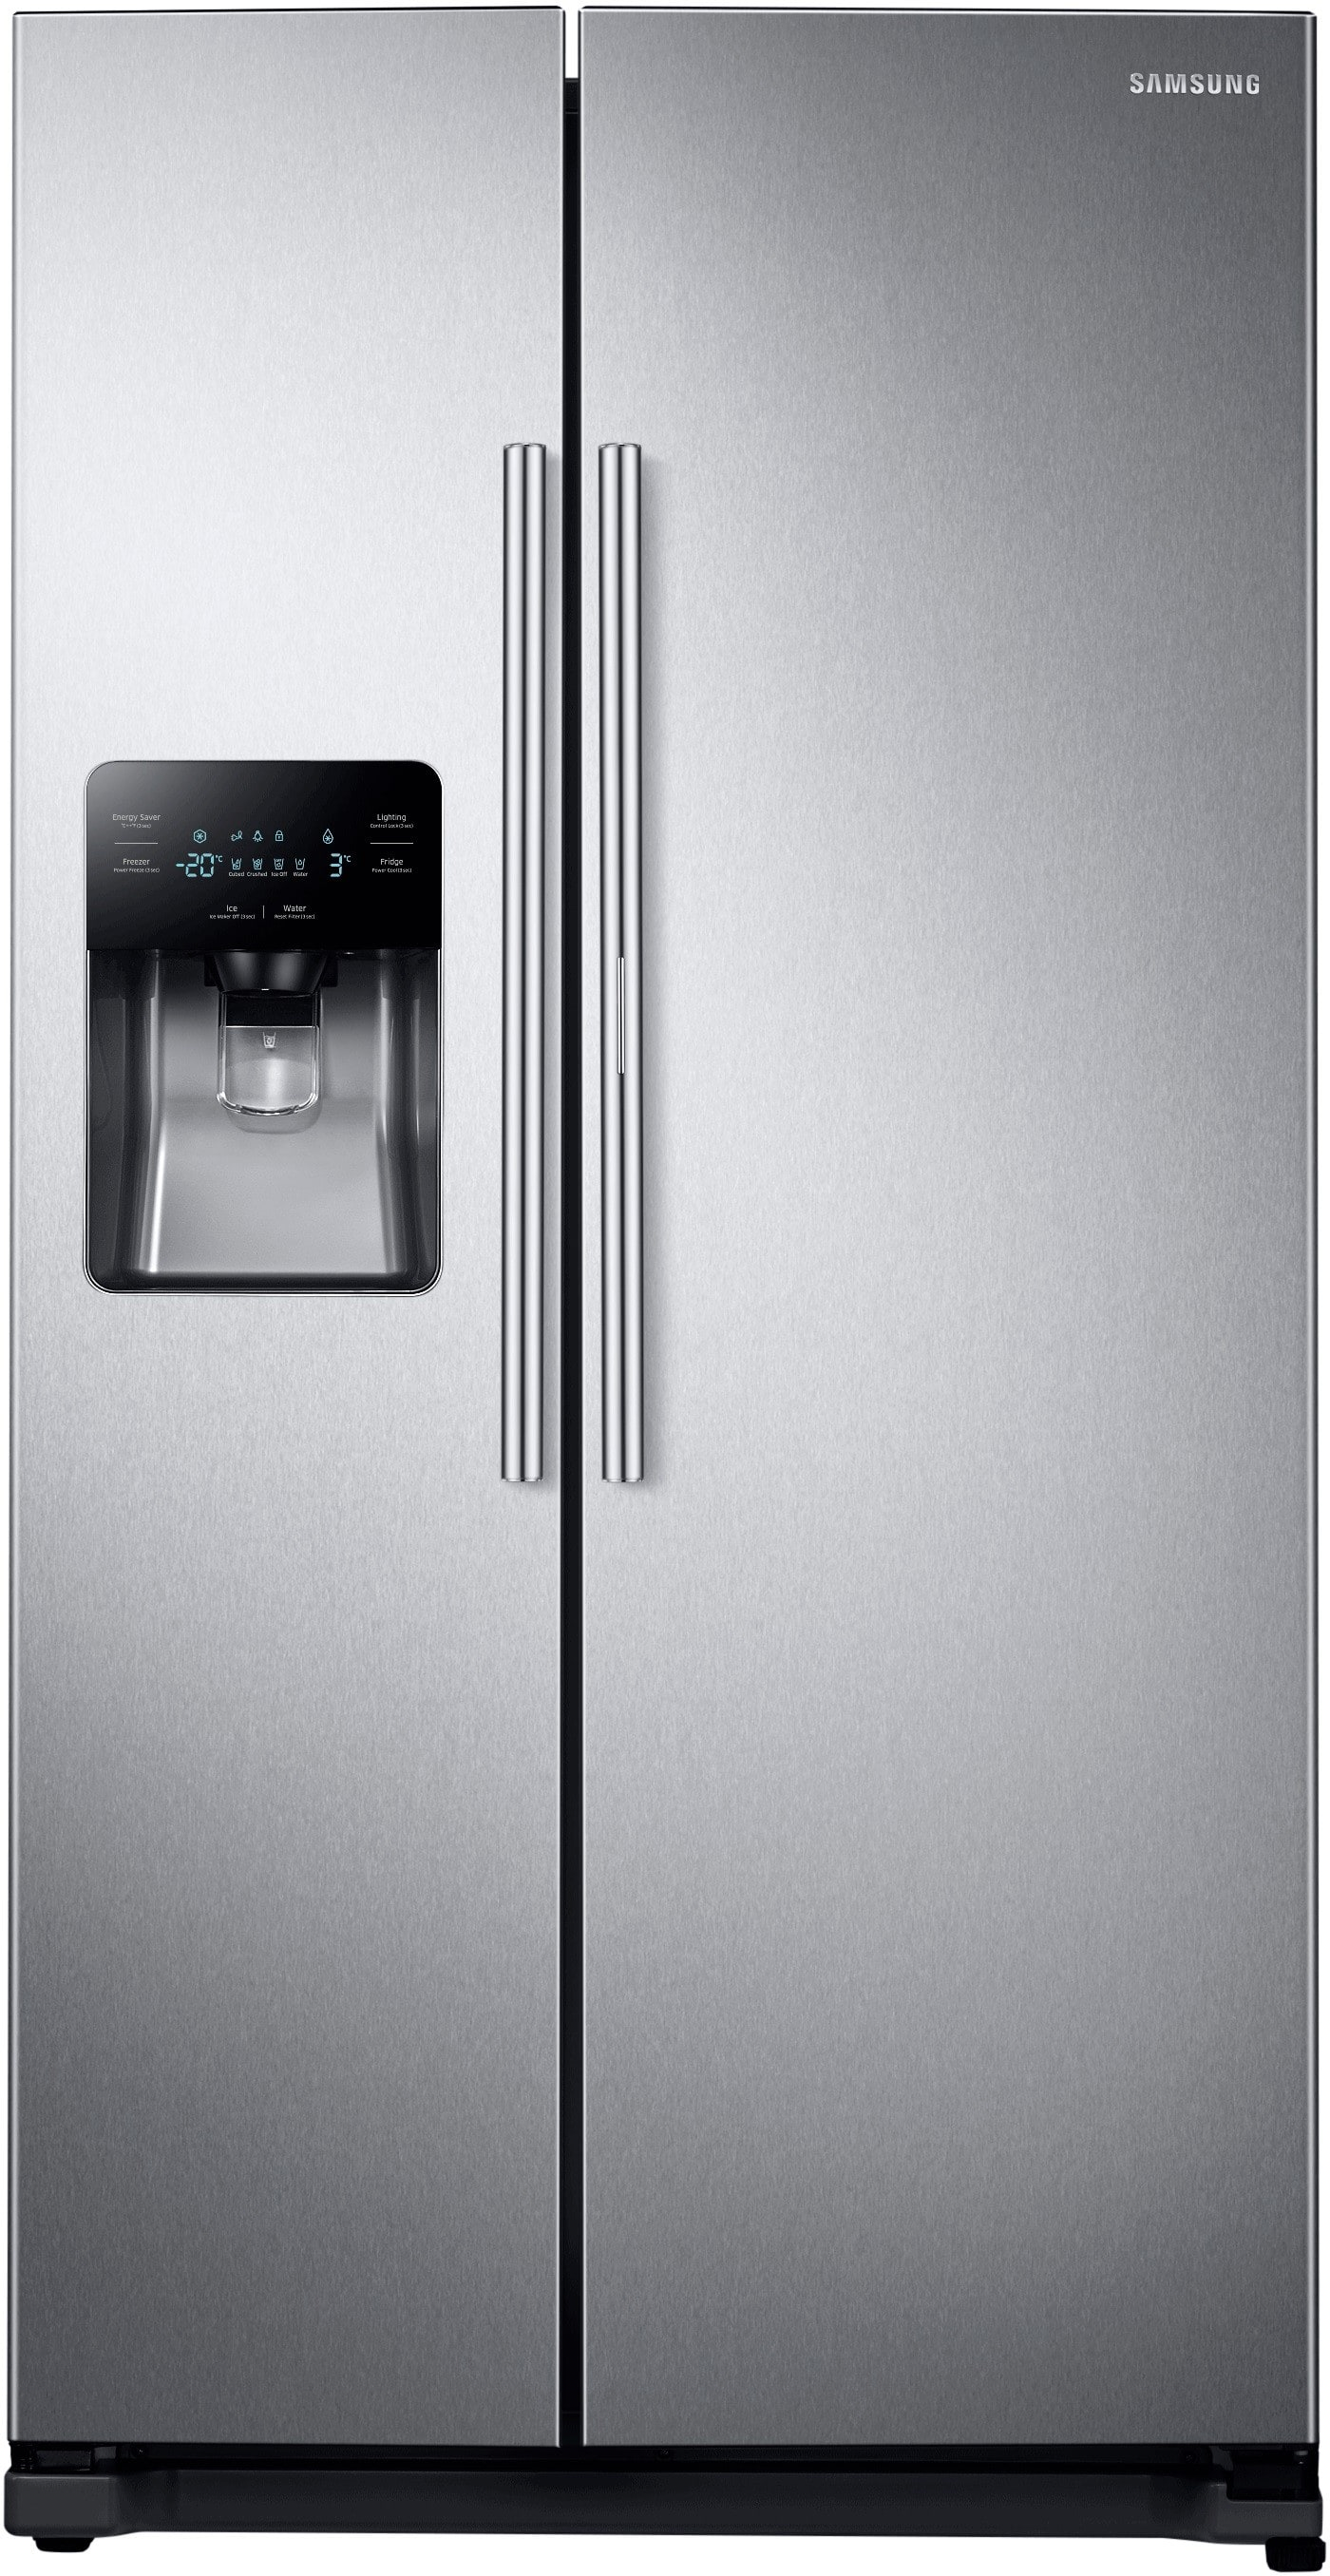 images parts ge top recommendation me and wall refrigerator replacement handle washer photos door mitsubishi box inspirations surprising load ice samsung doors